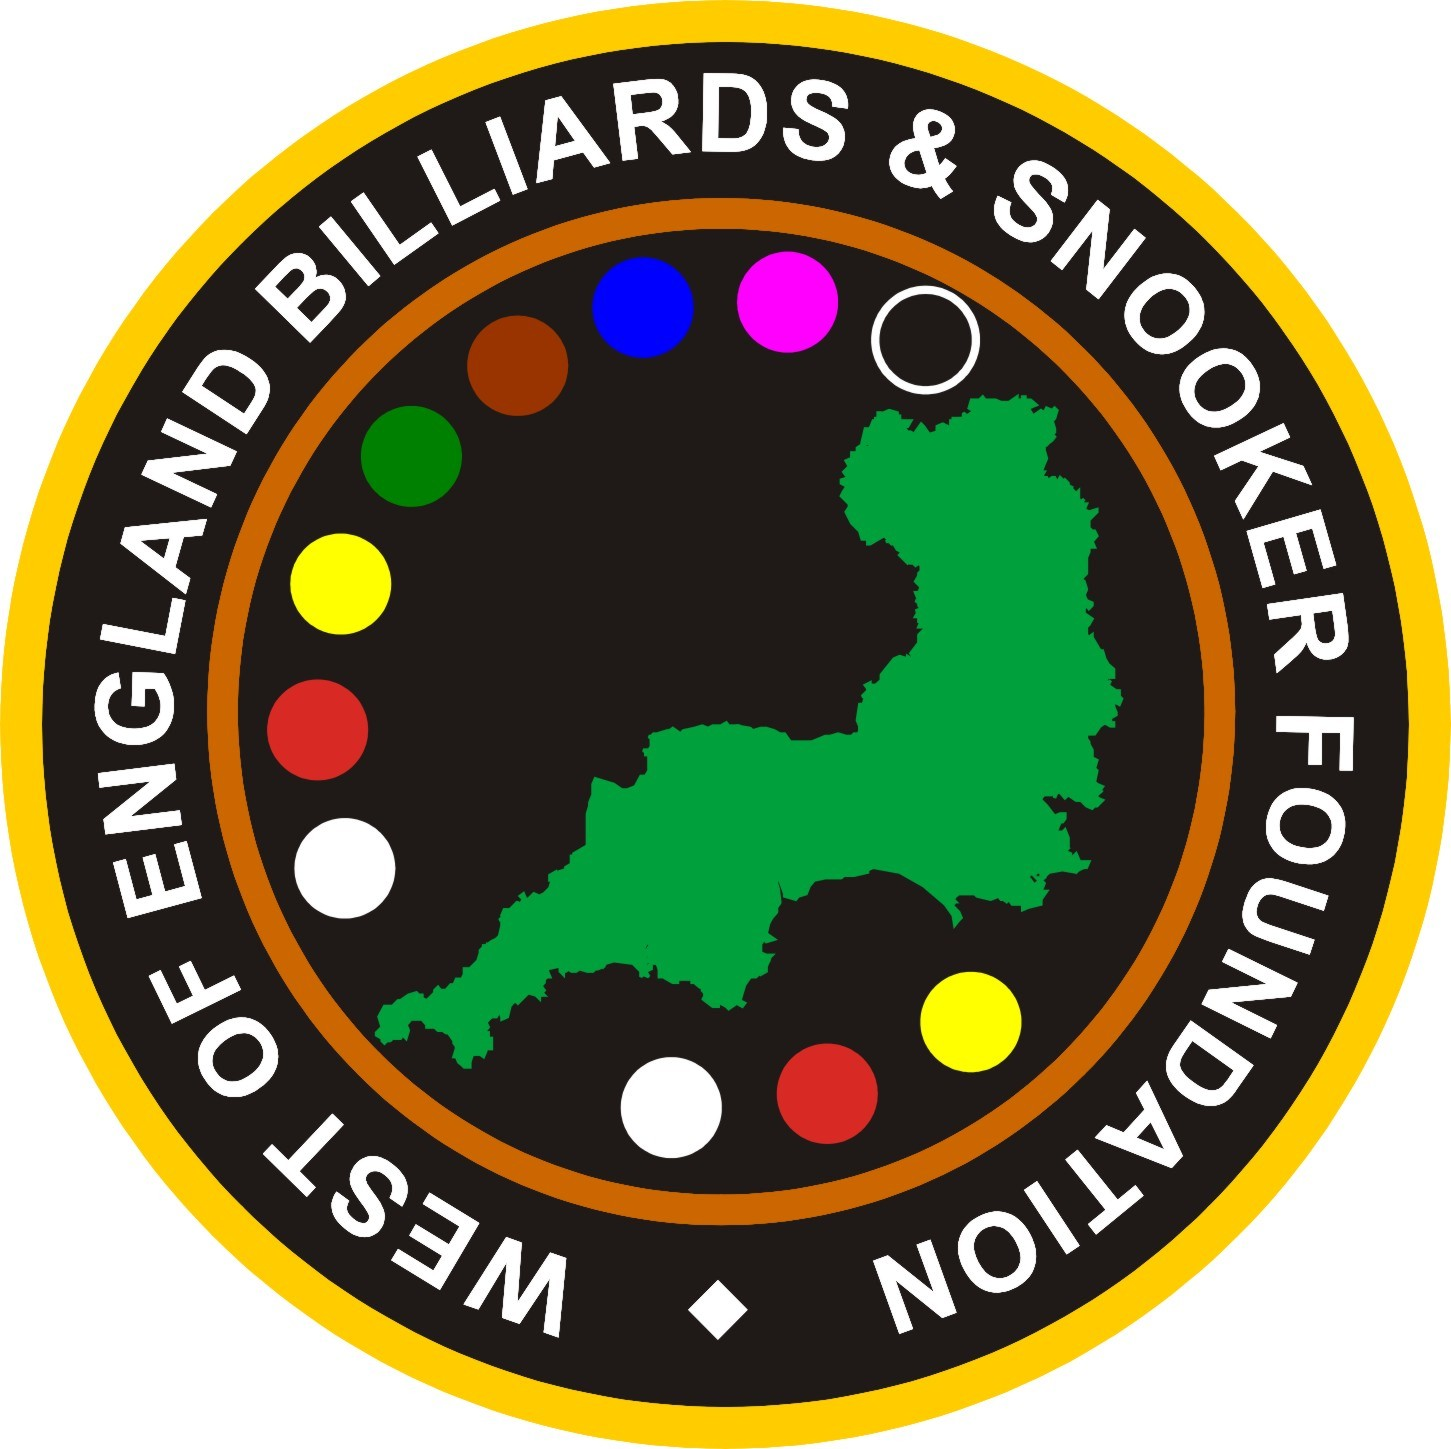 WEBSF Billiards & Snooker